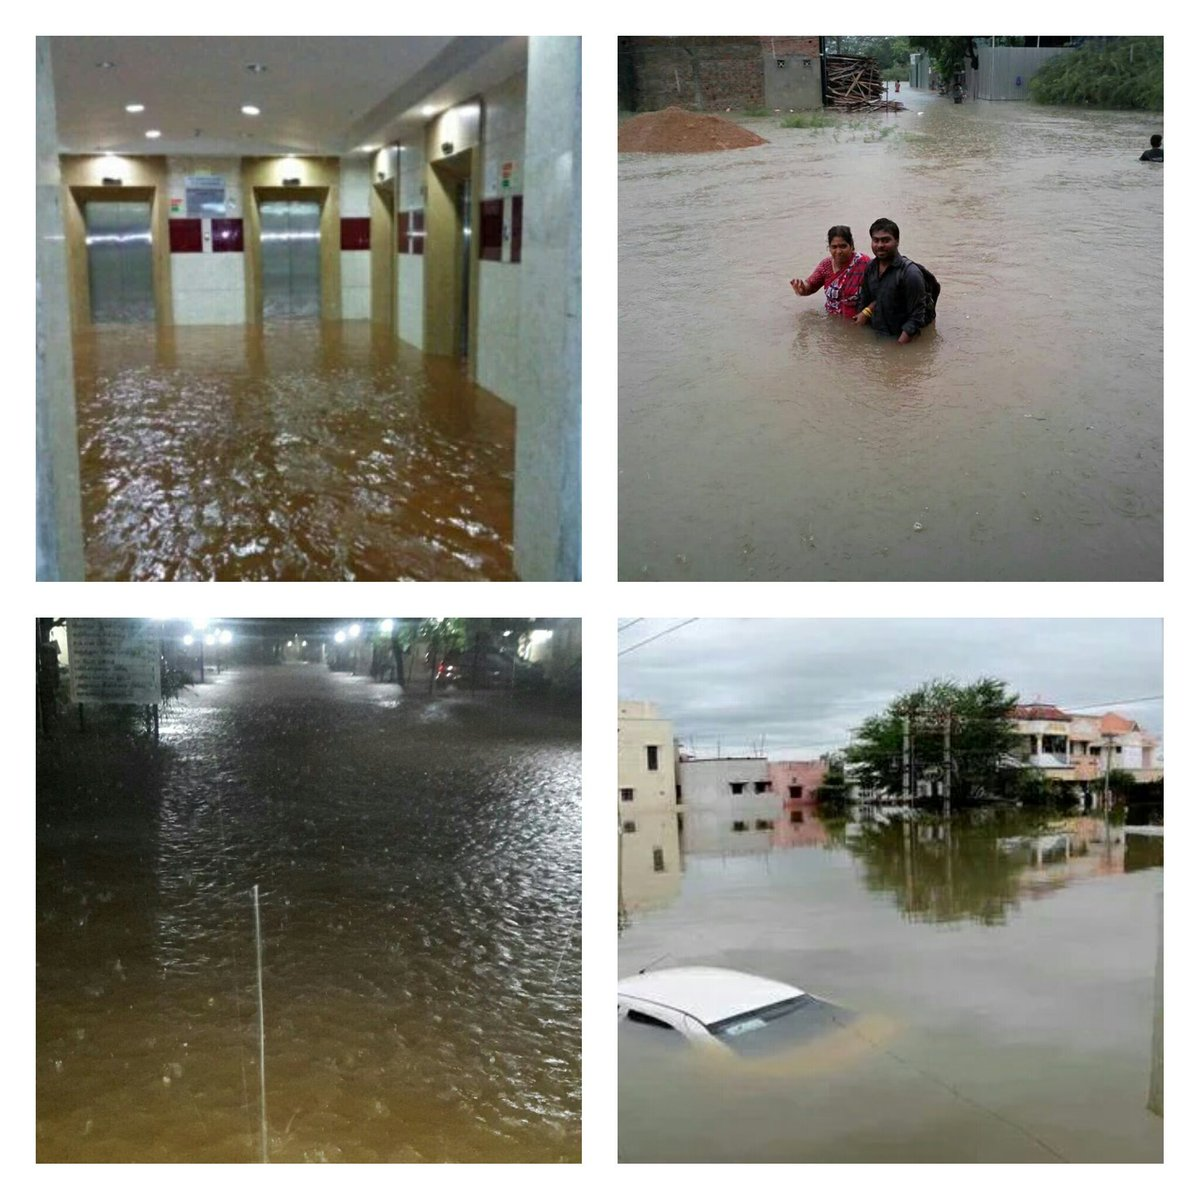 When people show compassion to animals at these times, faith in humanity restored. #Chennairains https://t.co/QU7h5qvcUz